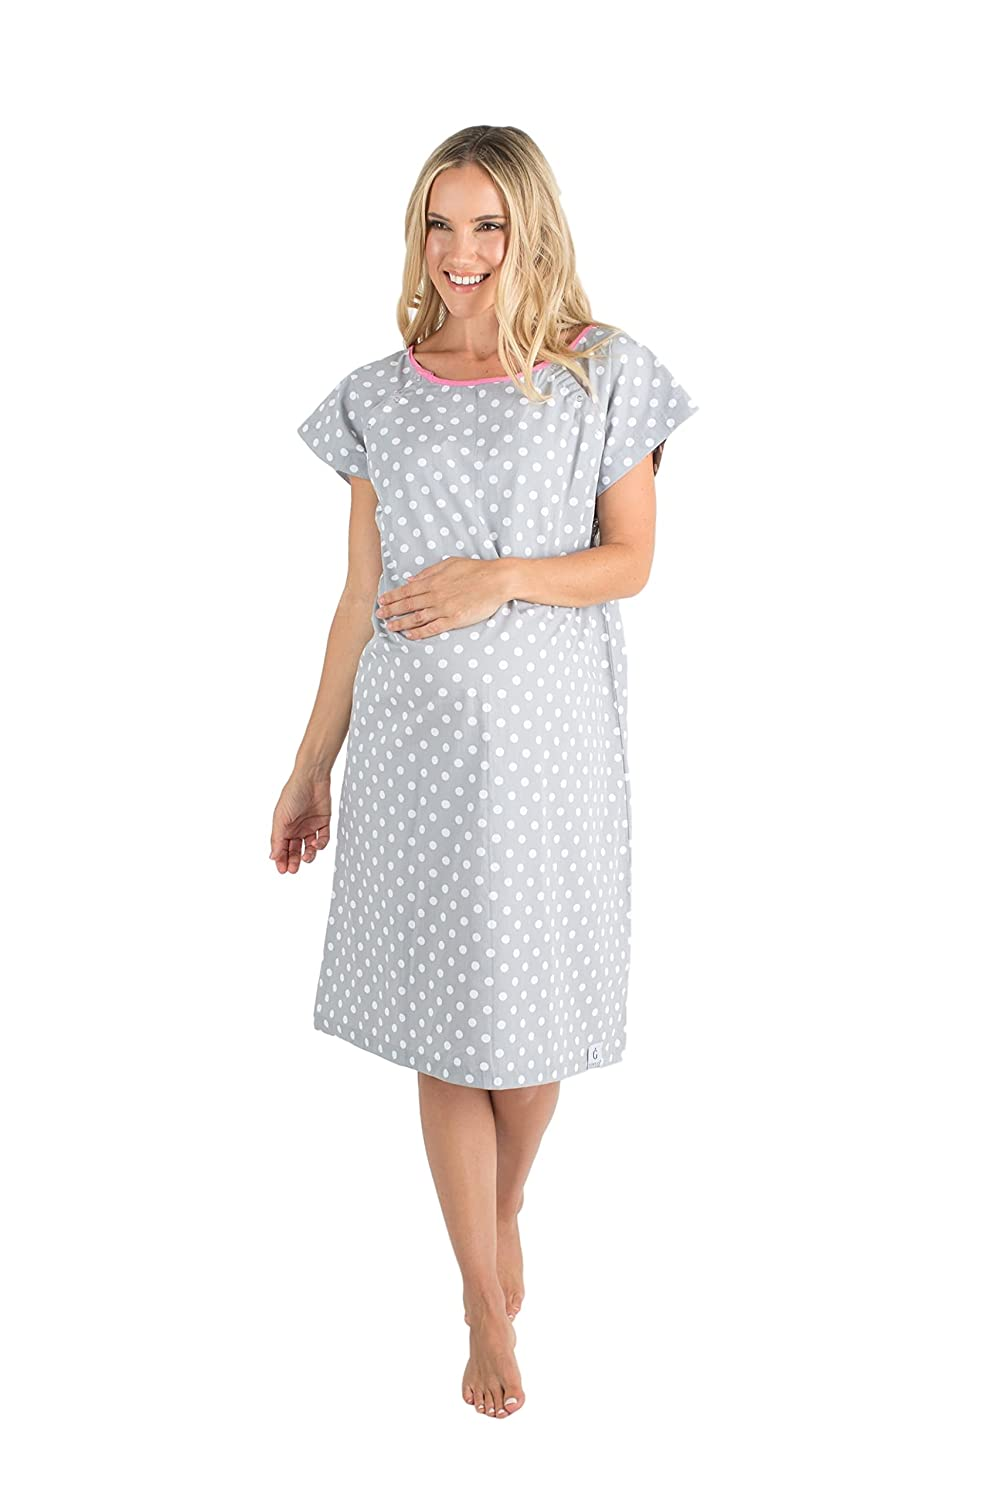 Gownie Lisa (Size 2-12)- Baby Be Mine Maternity  - Hospital Gown for Labour, Delivery & Birth - Hospital Bag Must Have/ Fantastic Baby Shower Gift - Gender Neutral Grey